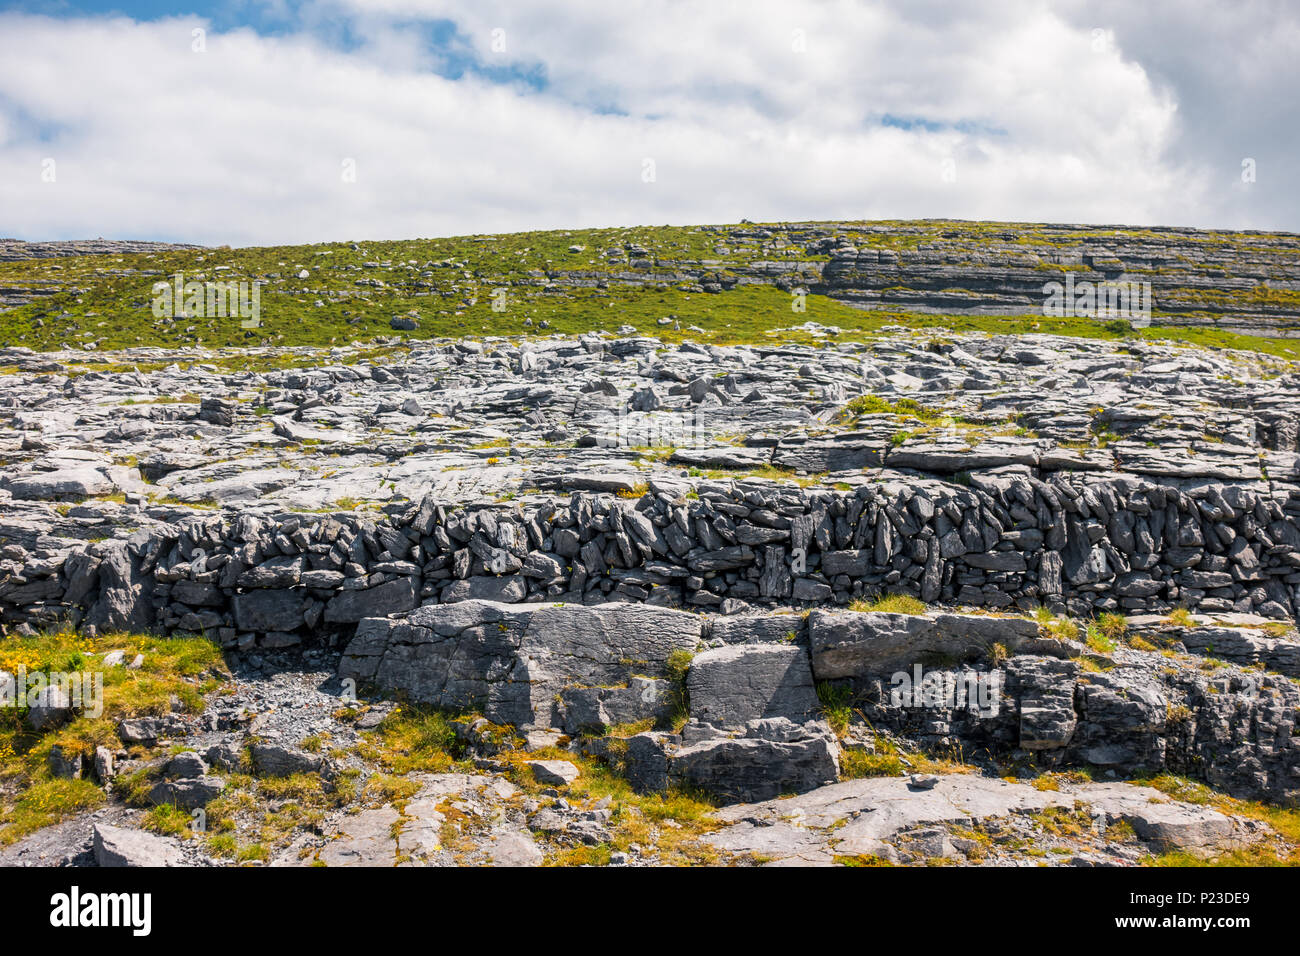 Burren National Park in County Clare in Ireland - Stock Image